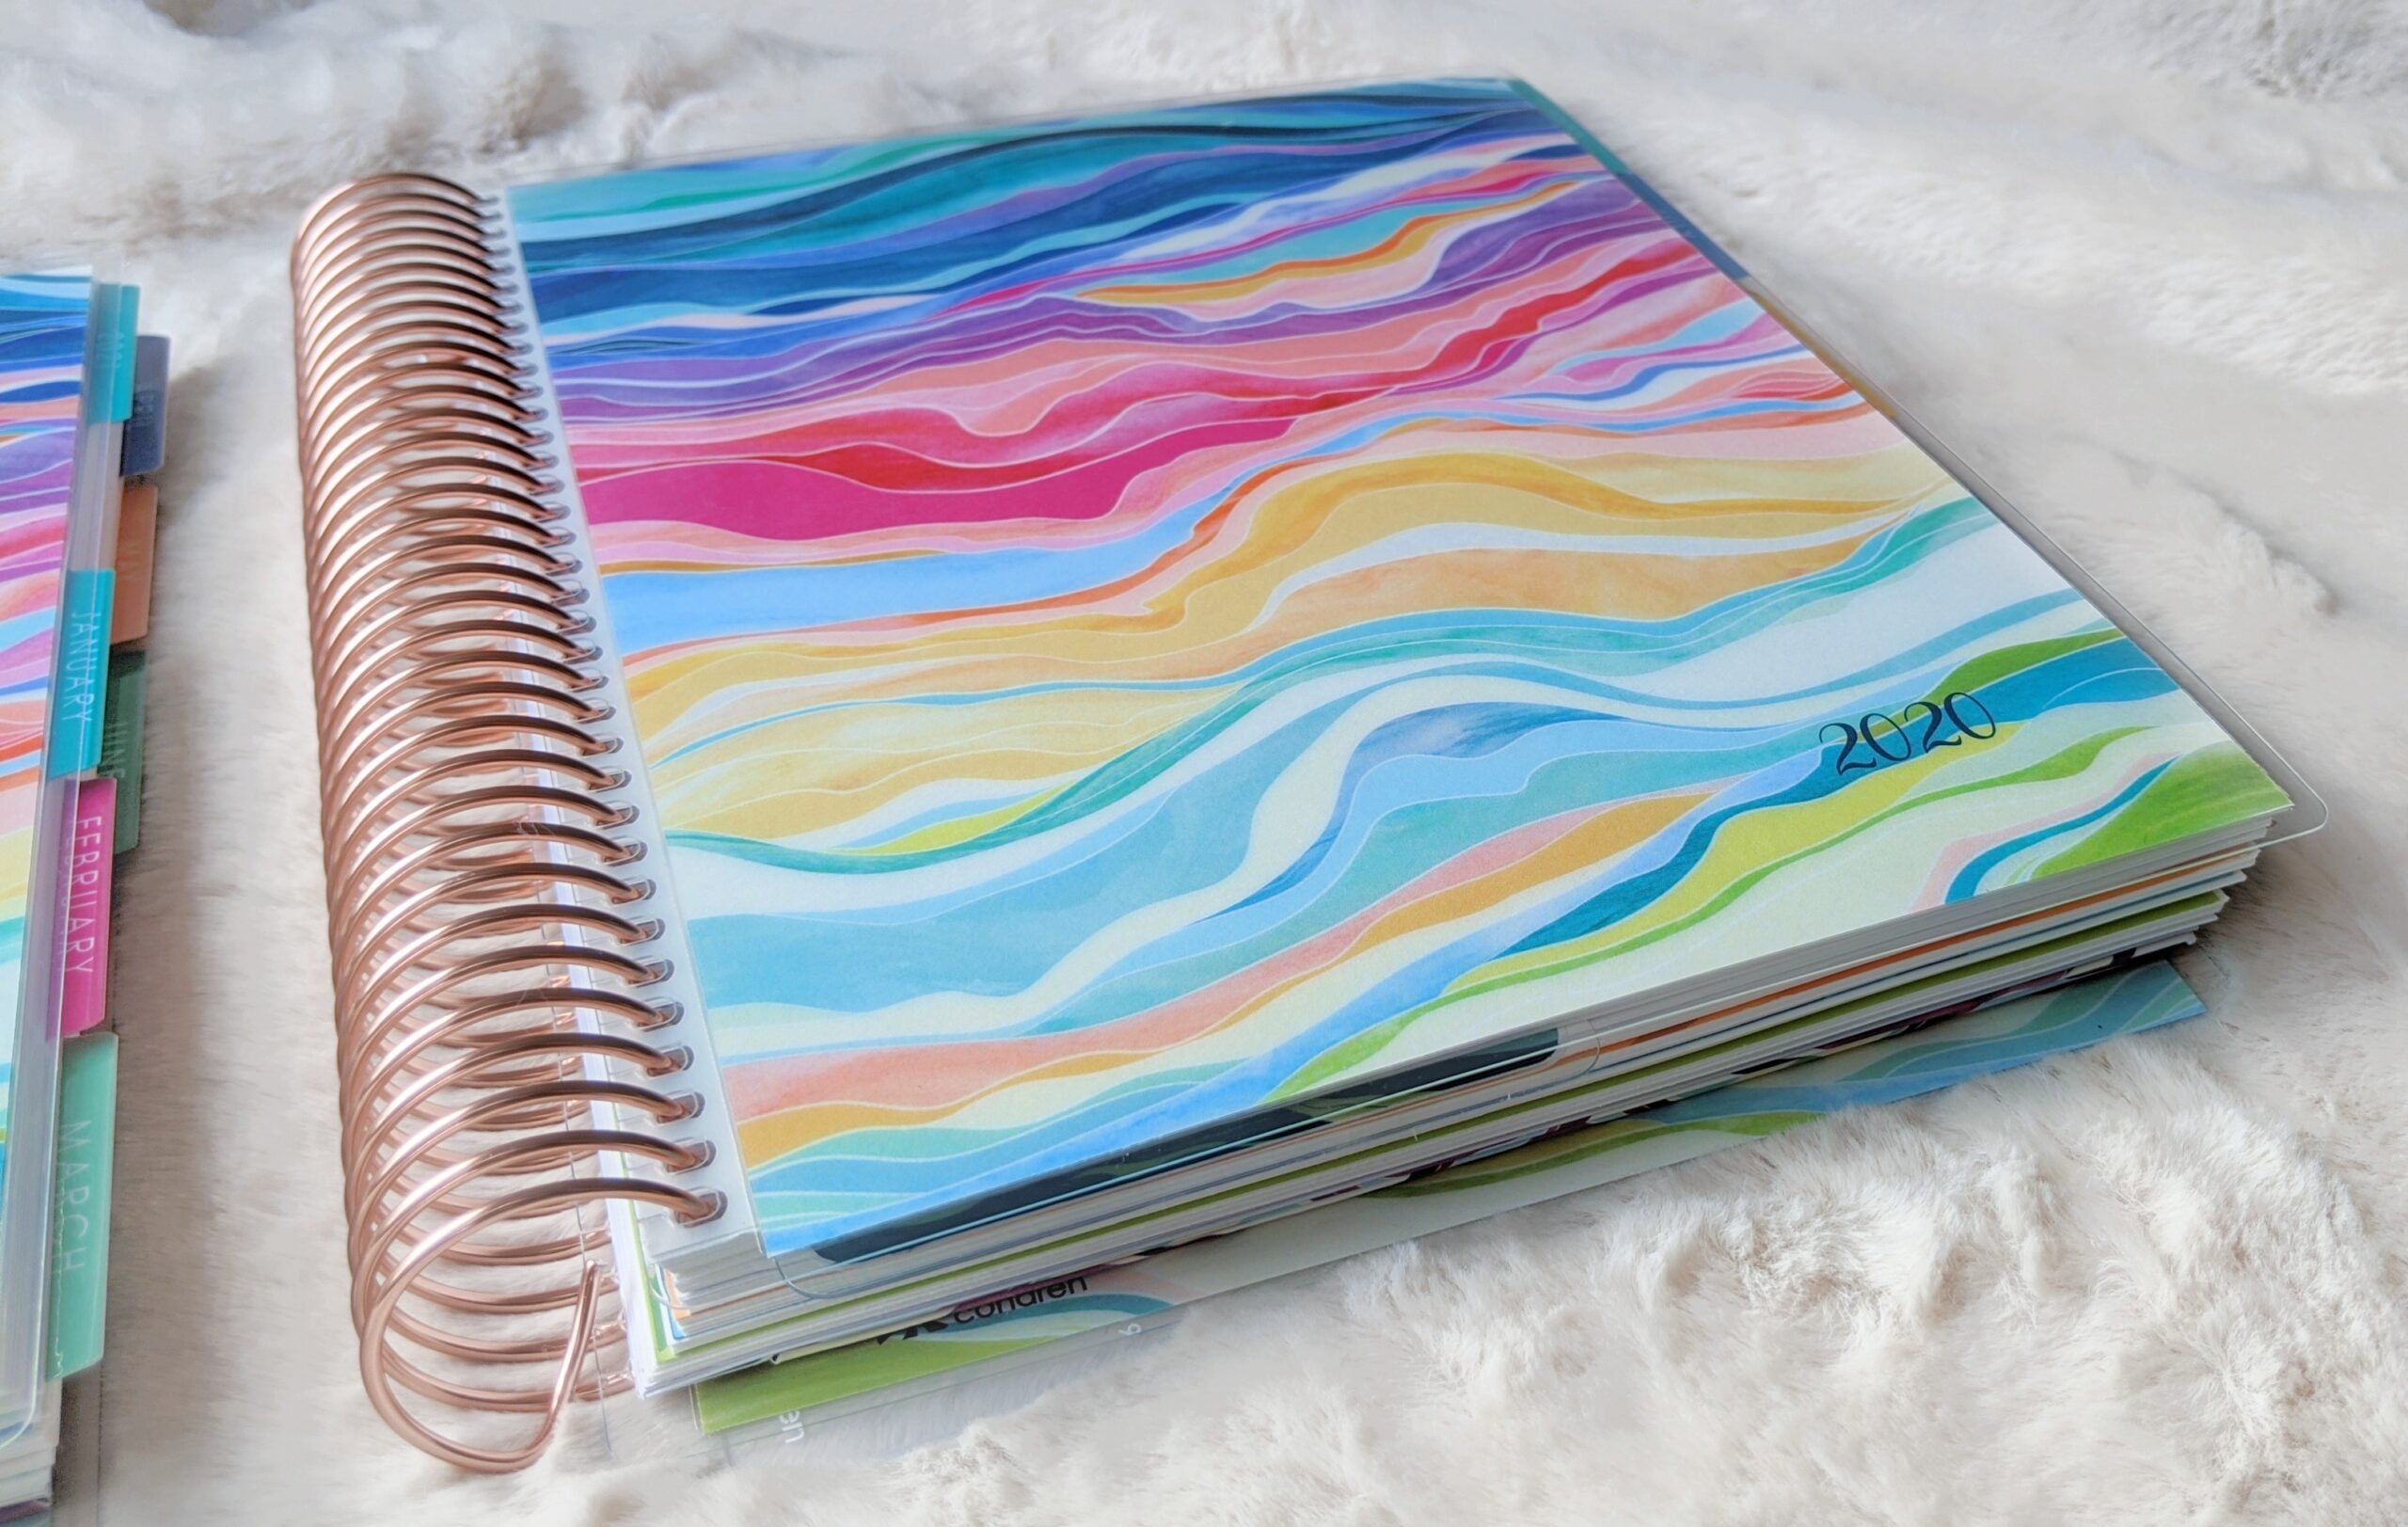 closer view of the Daily LifePlanner by Erin Condren